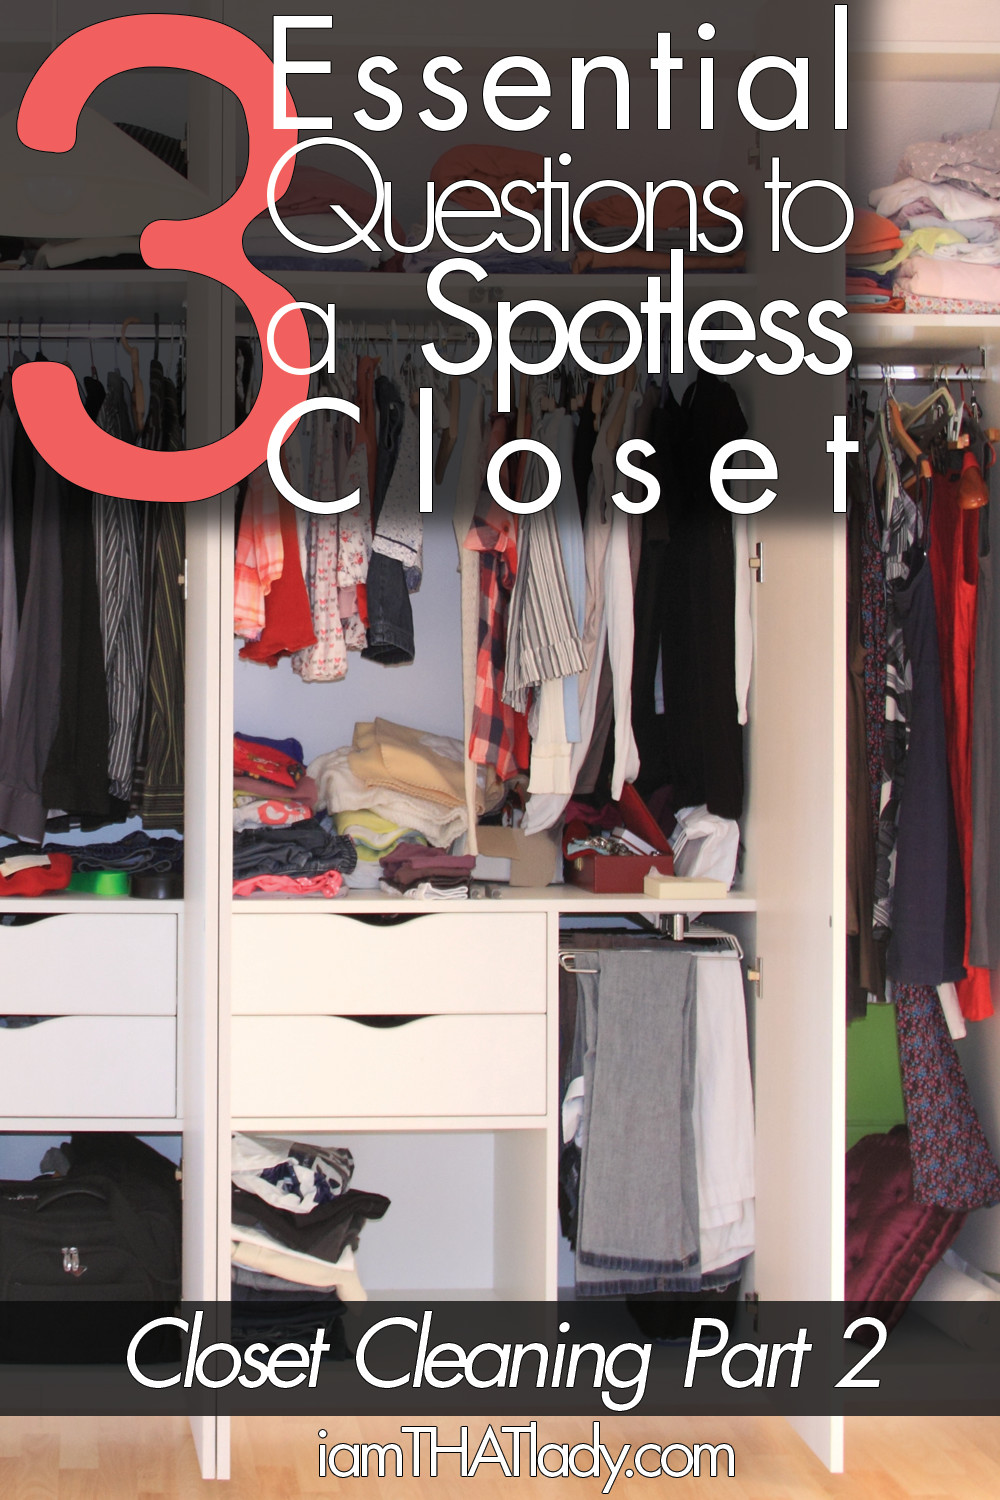 Having trouble cleaning your closet and figuring out what and how to get rid of clothes? You need these 3 Essential Questions to Organize your Closet!